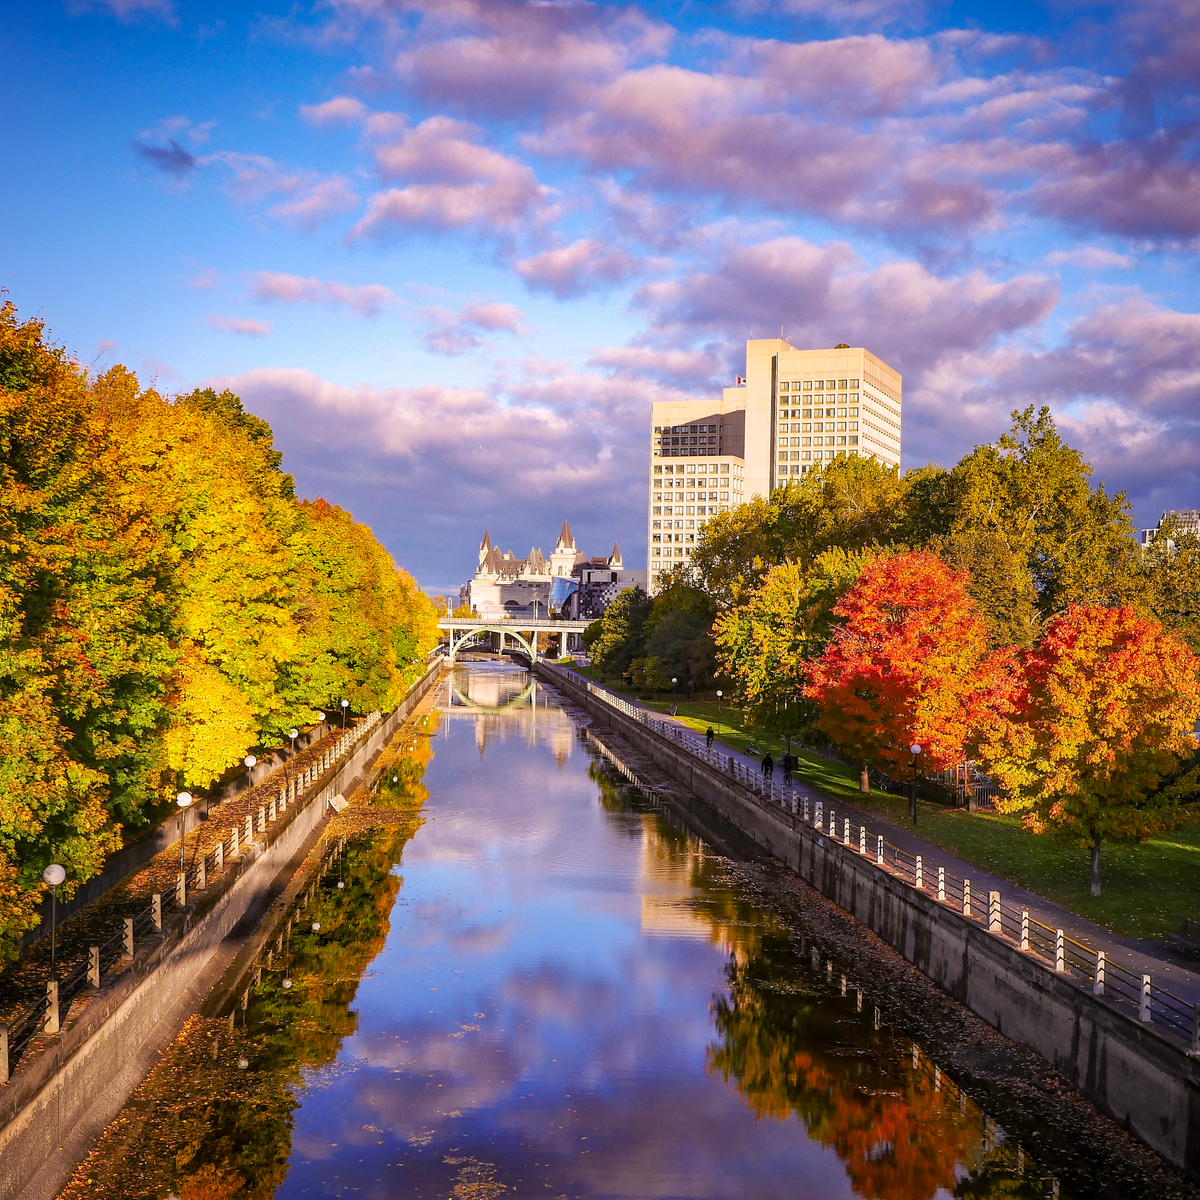 Ottawa's reflection off the Rideau Canal, Canada.